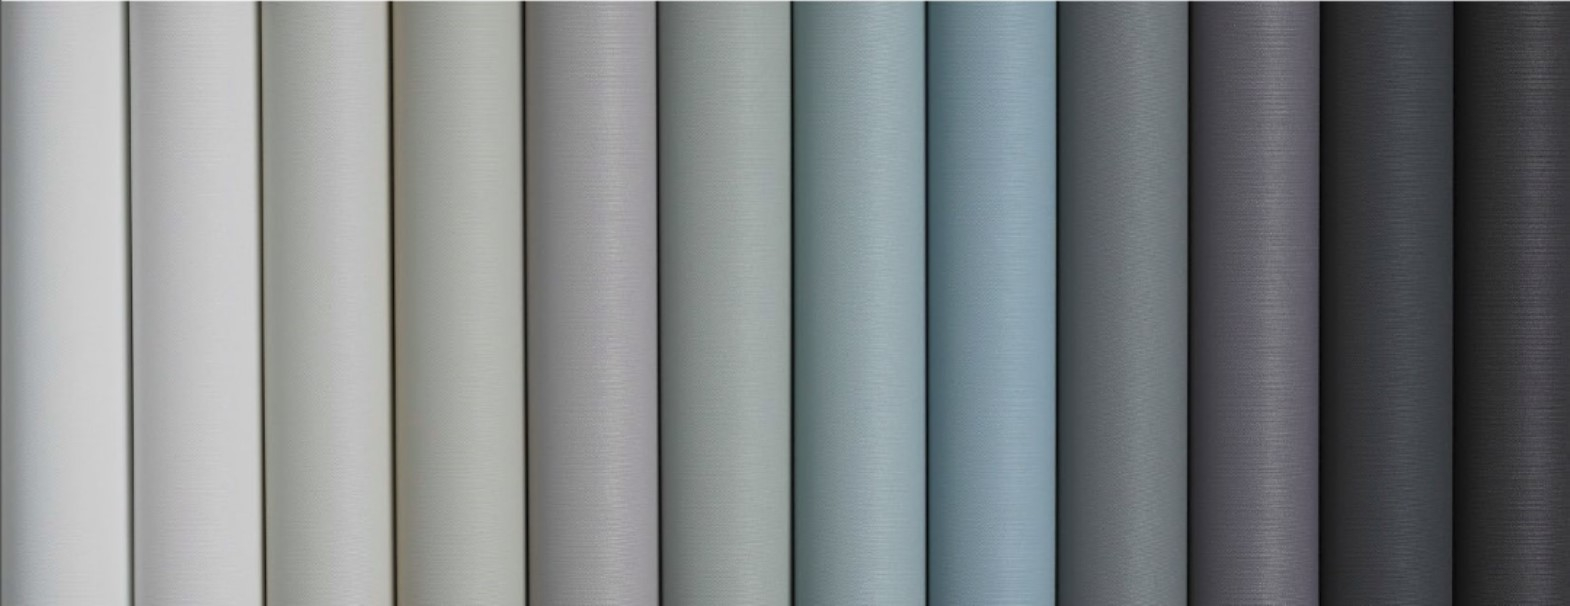 Dulux Most Popular Paint Colours Now Have Roller Blinds Fabrics Inside Roller Fabric Blinds (Image 4 of 15)